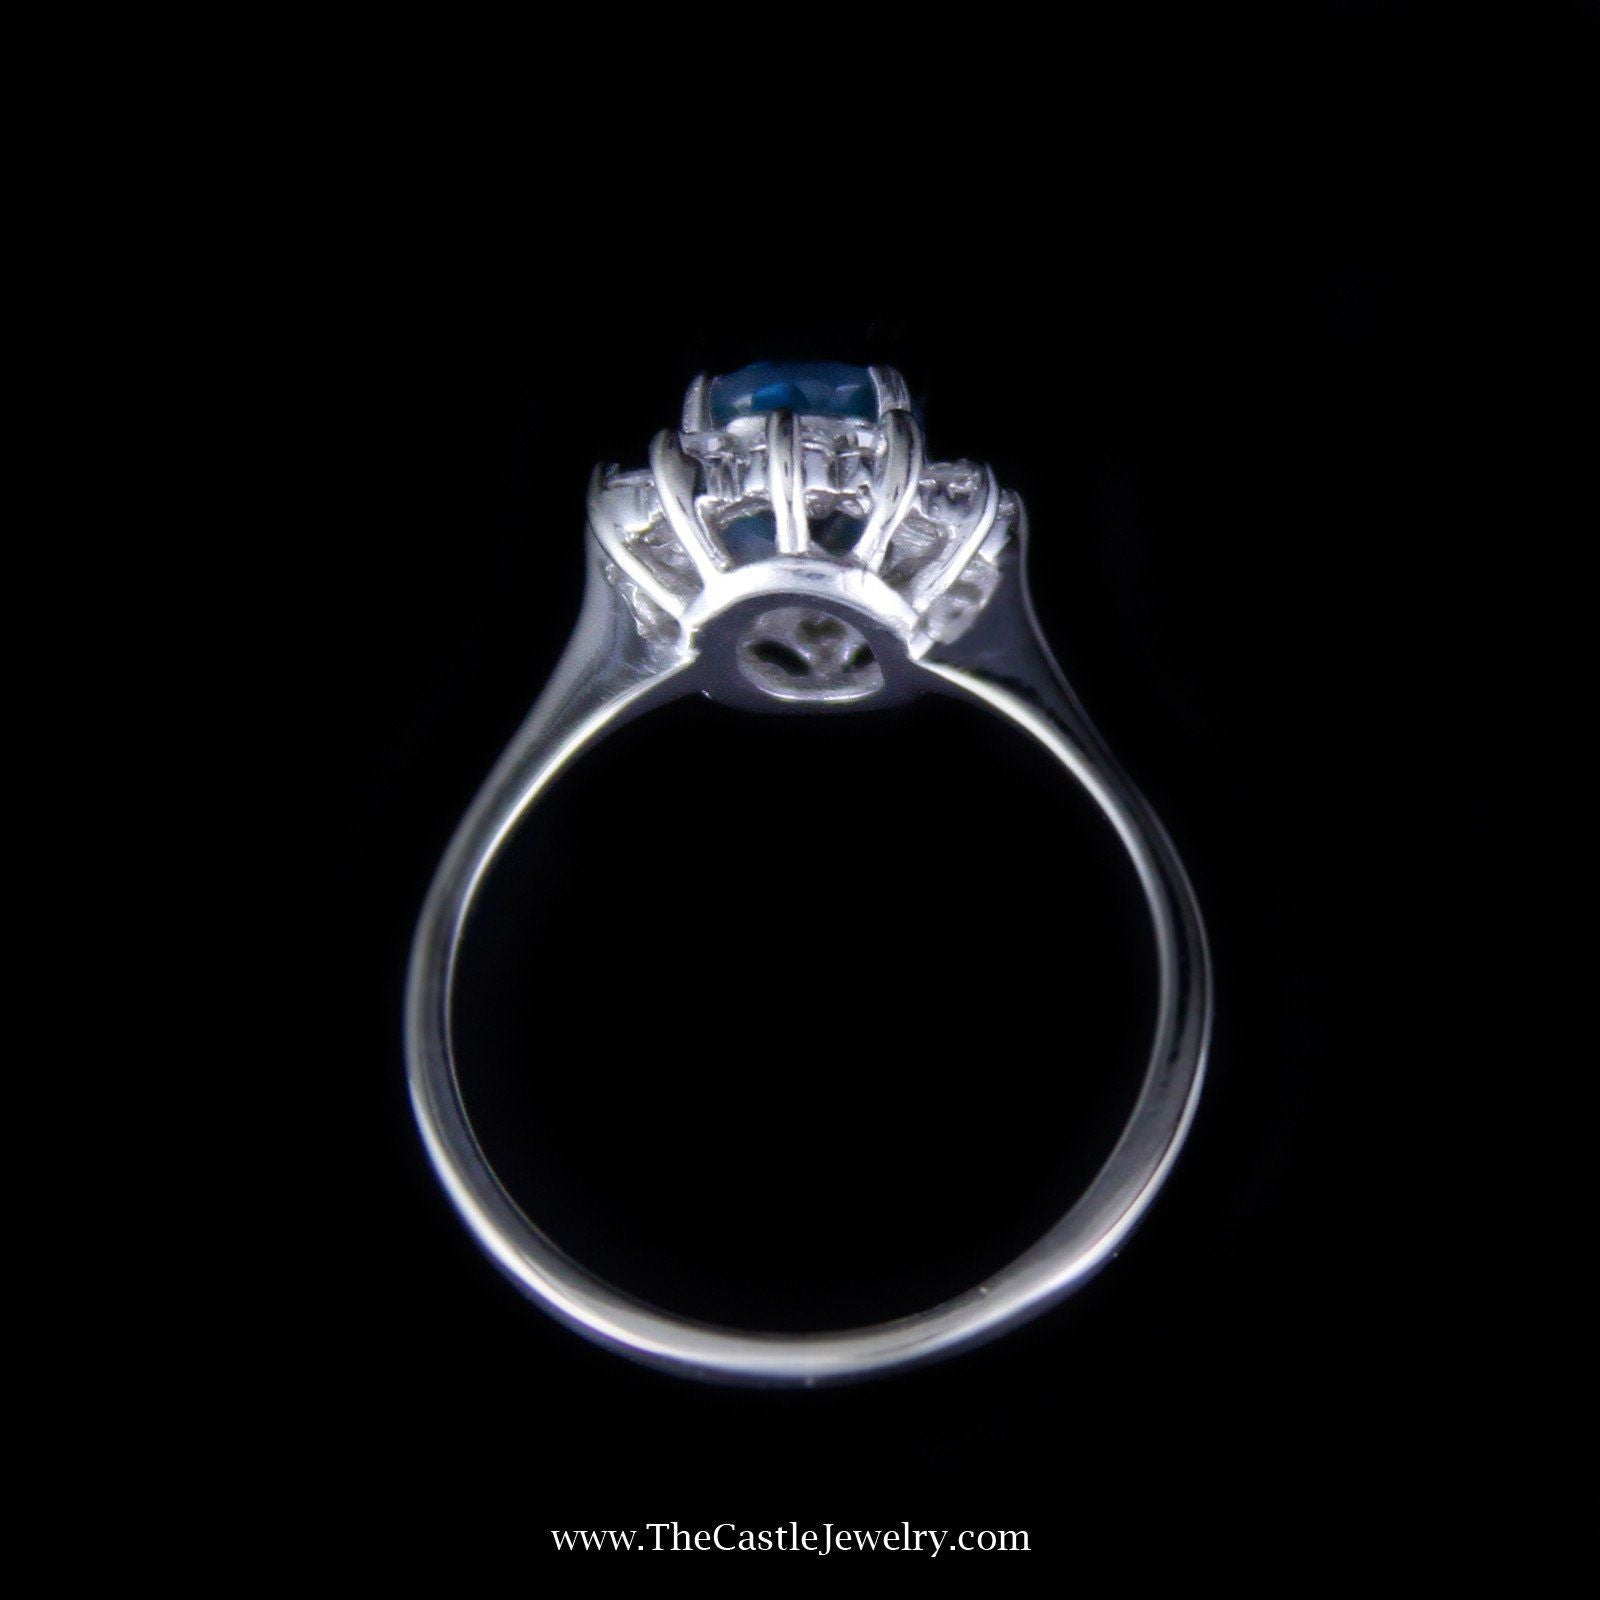 Charming Oval Topaz Ring with Diamond Bezel in 14K White Gold-1